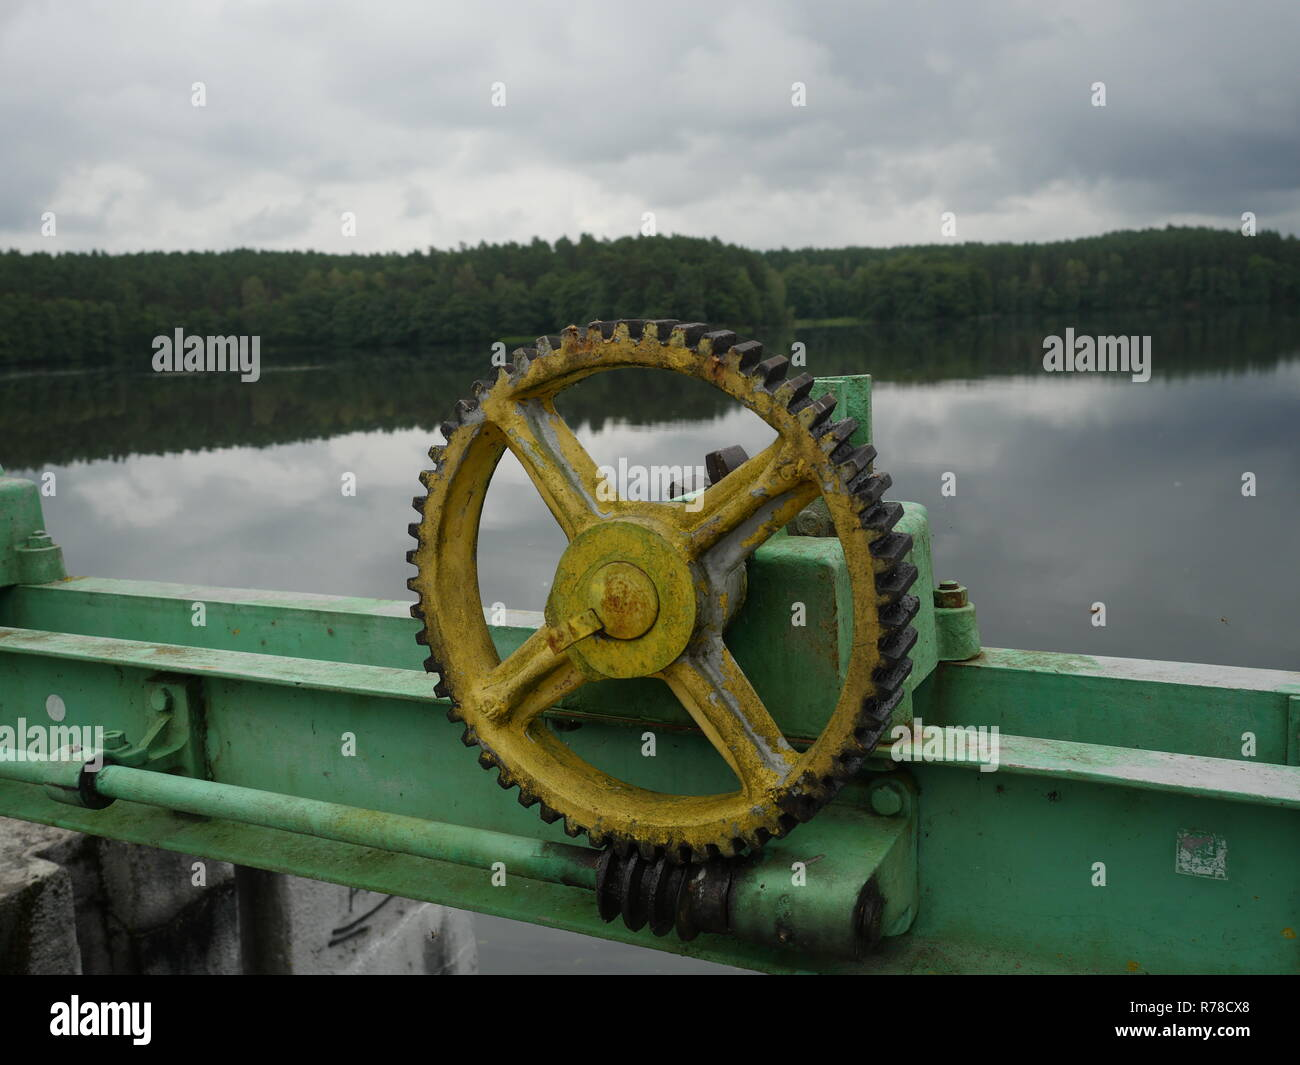 water barrier lifting mechanism with toothed wheels Stock Photo